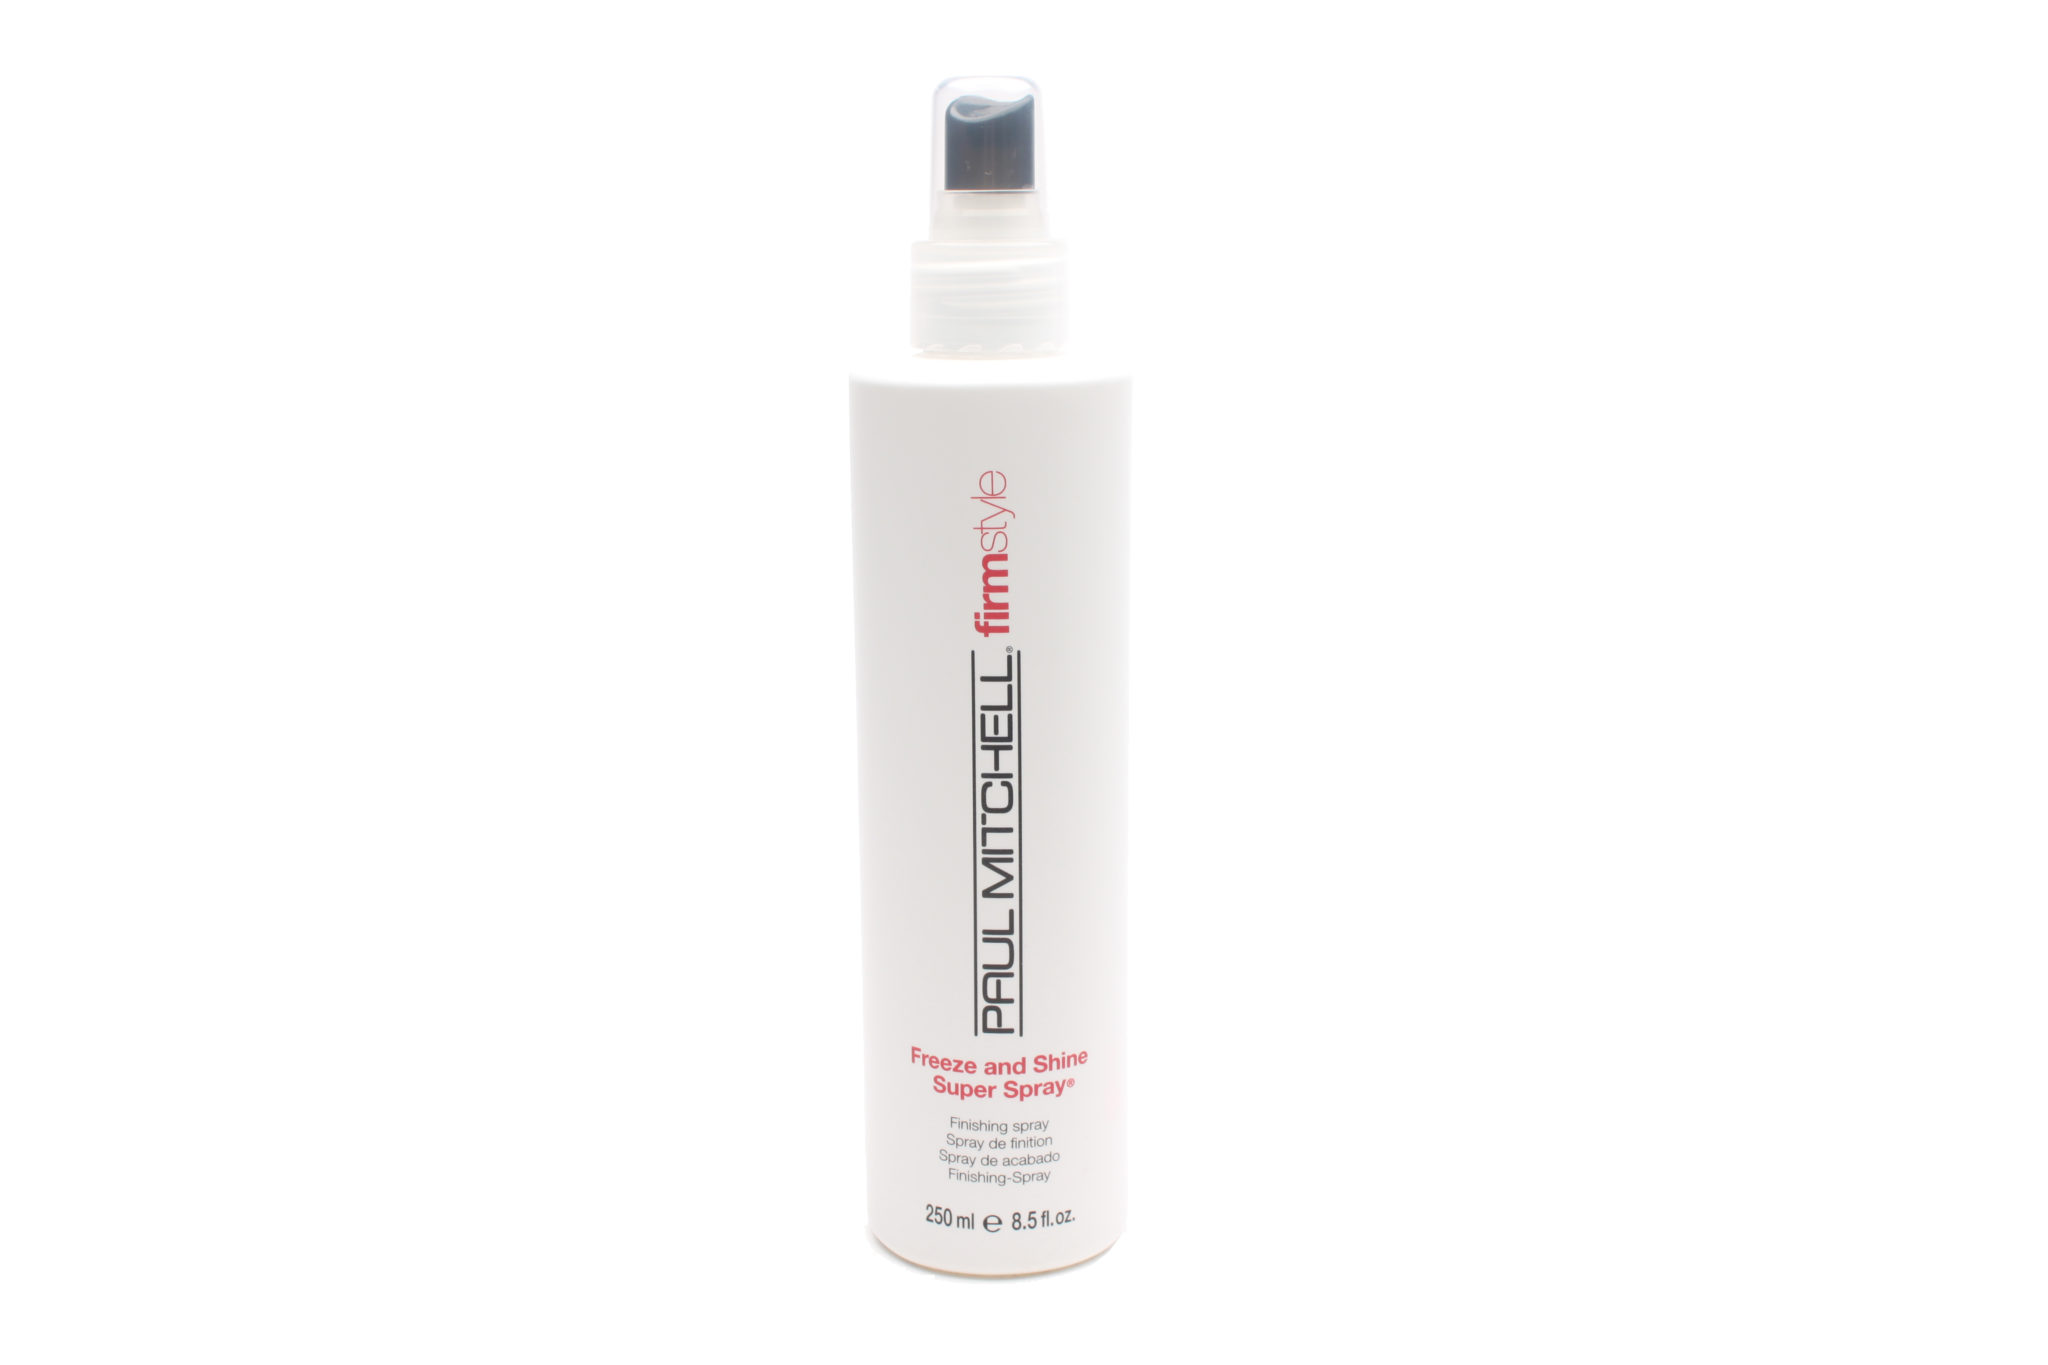 43358 Freeze and Shine Super Spray 8.5 oz Front